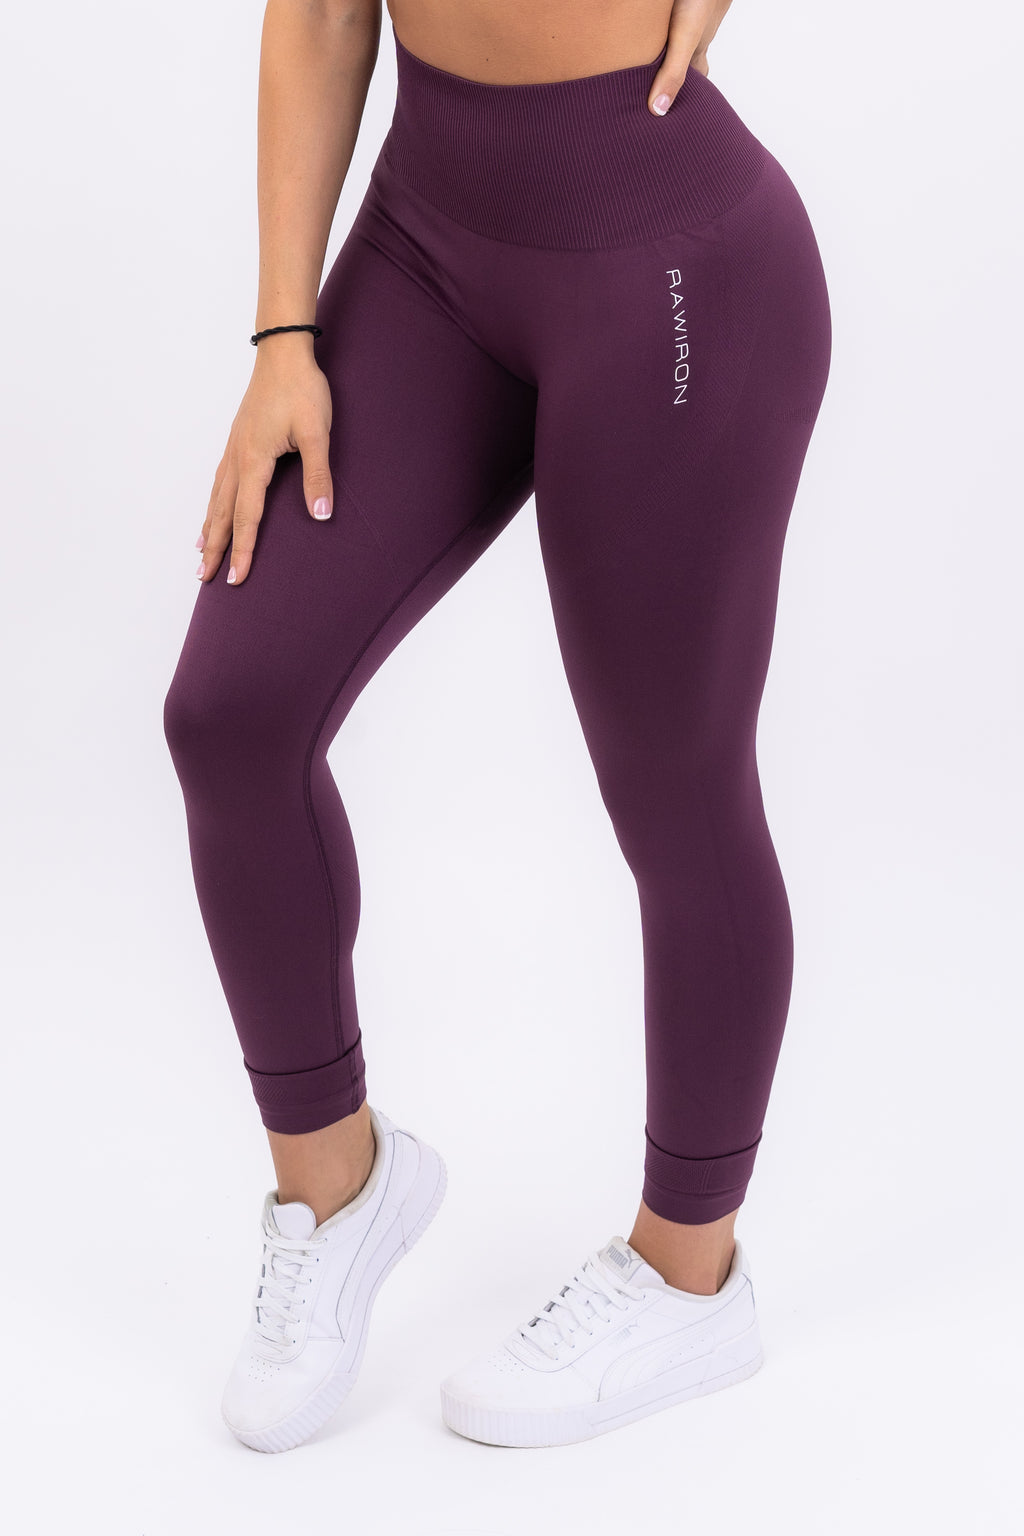 Womens Seamless Leggings (PLUM PURPLE)